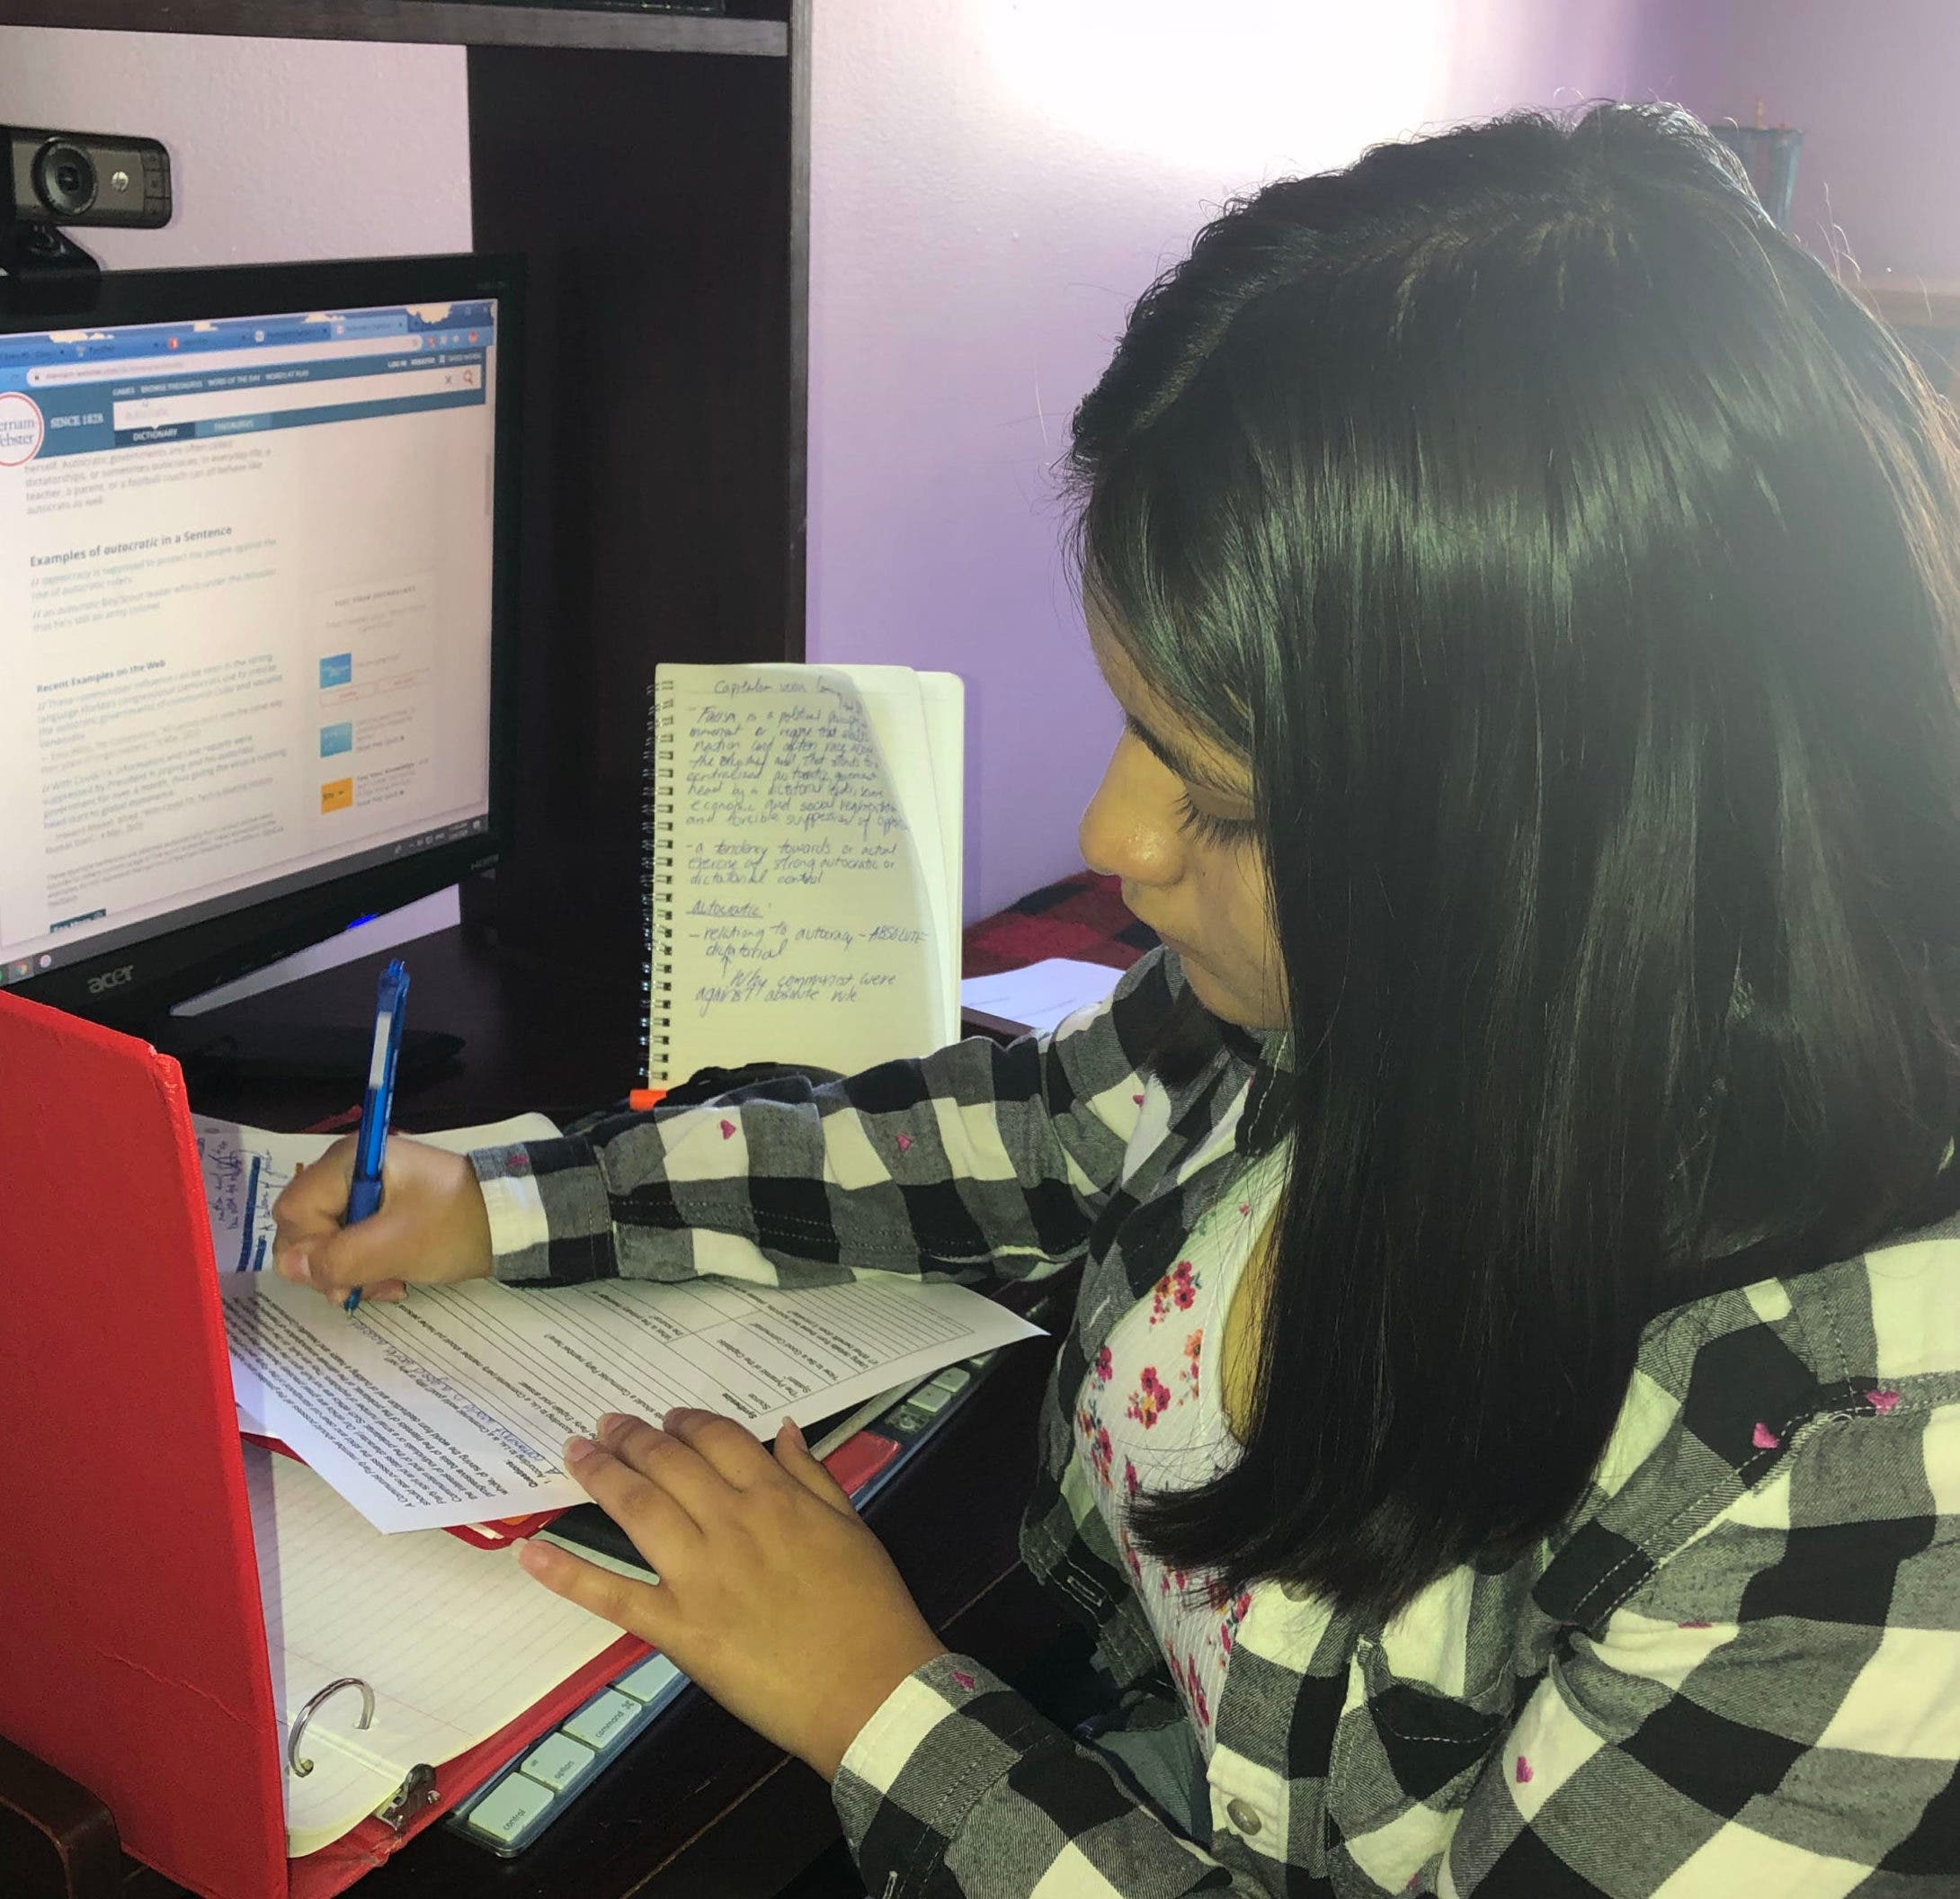 Siblings, Cats, Other Disruptions: NYC Students Reflect On Online Learning